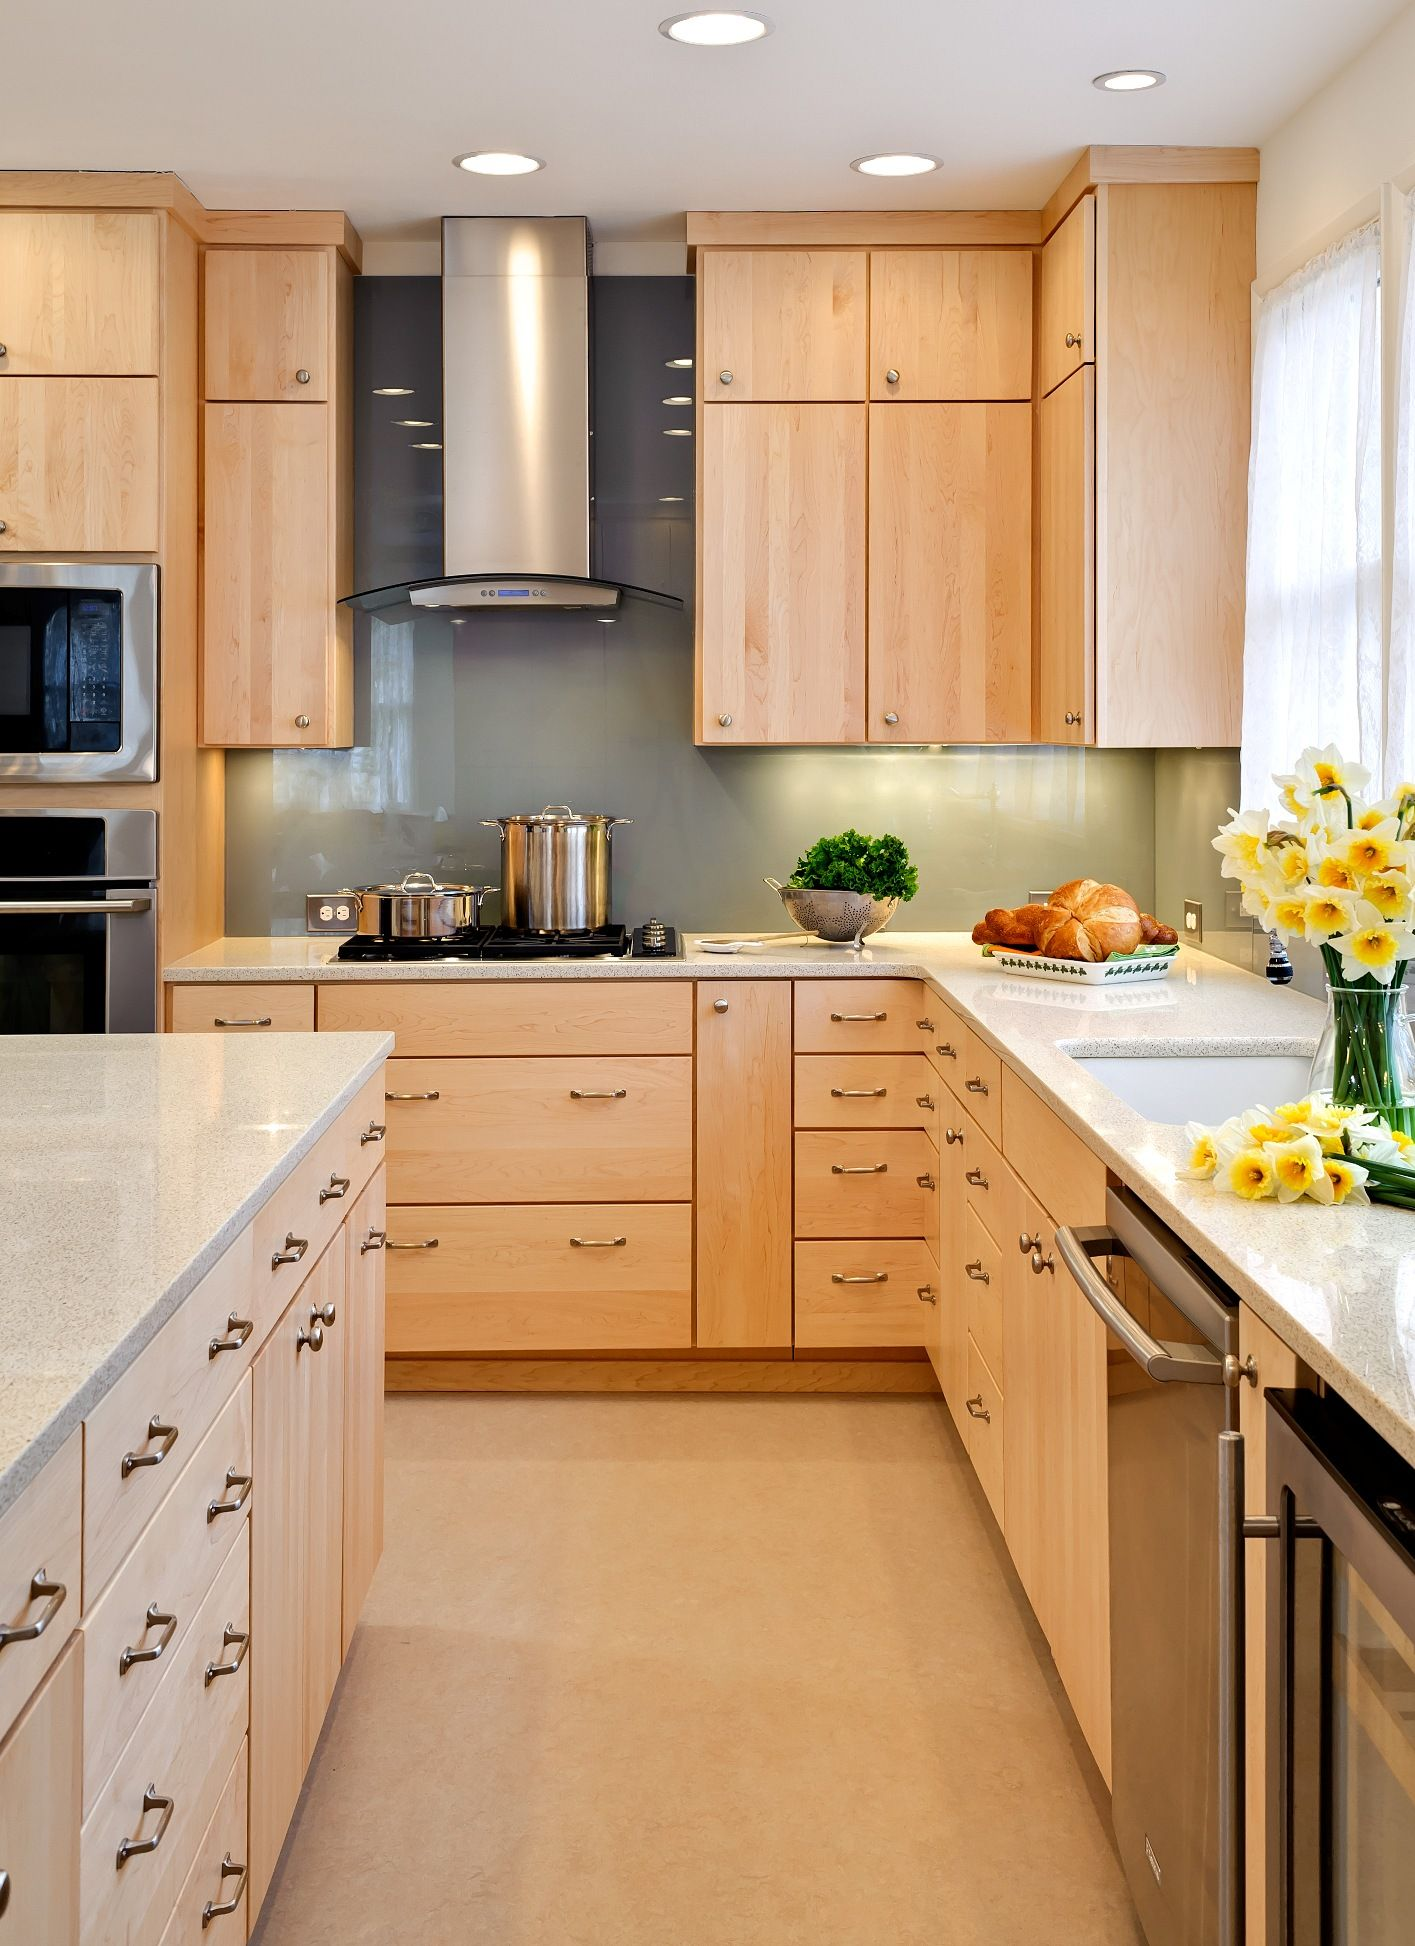 Too modern but we could do maple cabinets as another Kitchen colors with natural wood cabinets